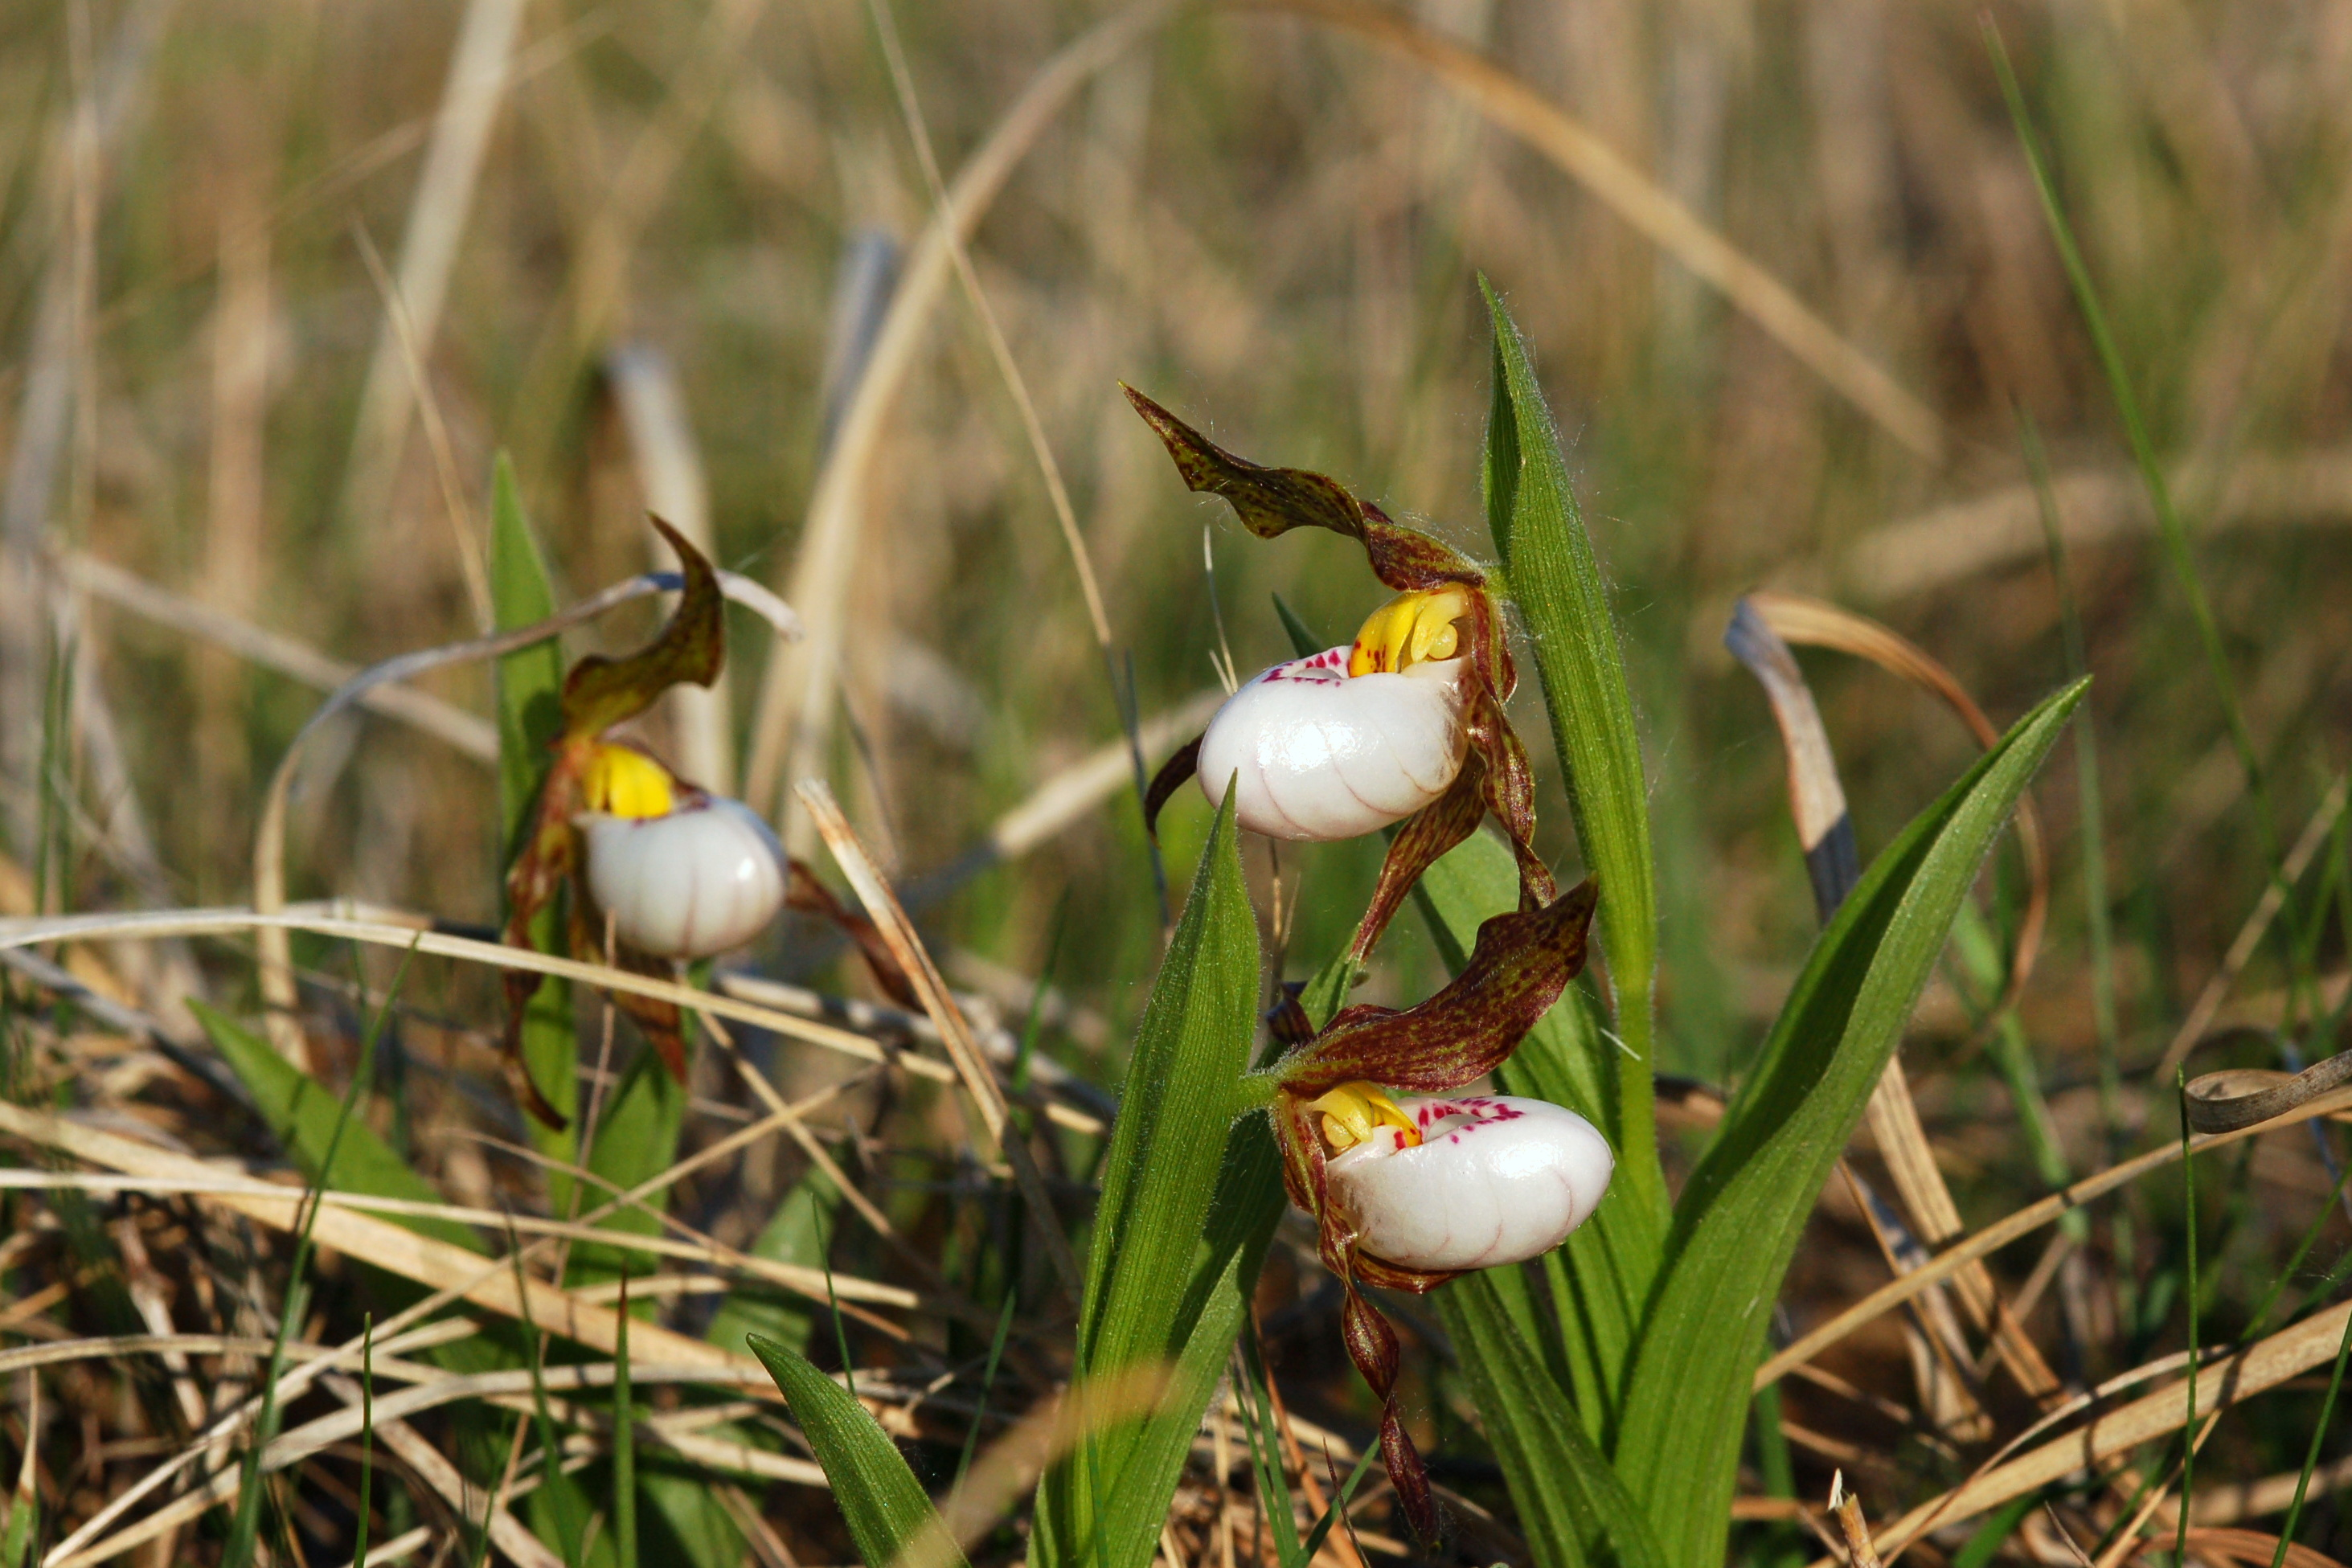 Small White Lady's Slipper